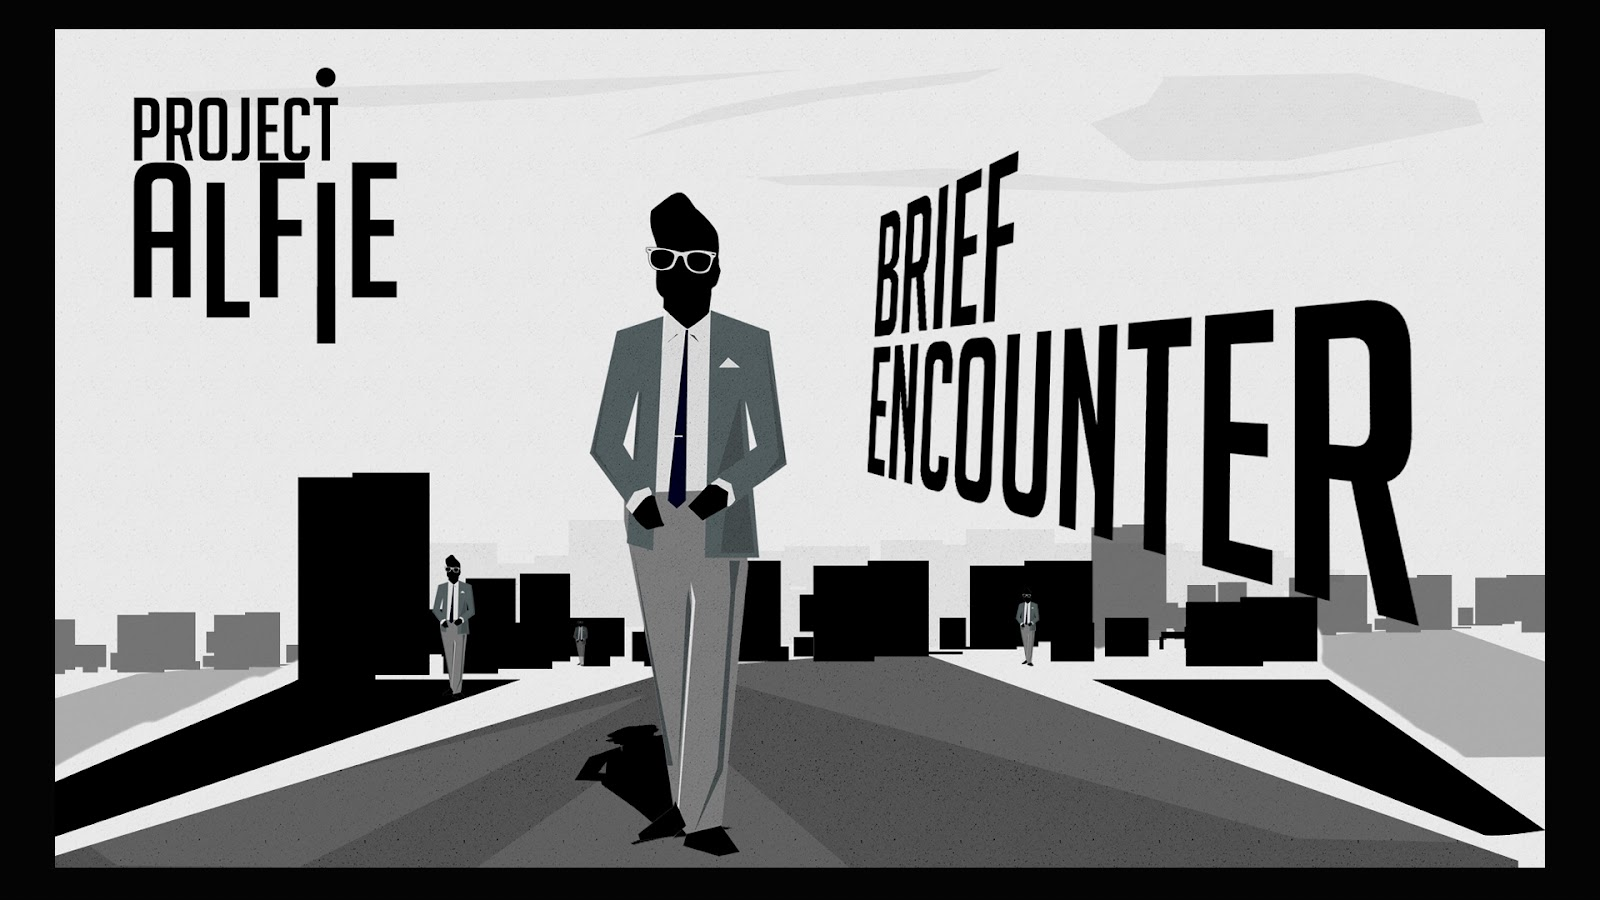 Project Alfie - Brief Encounter